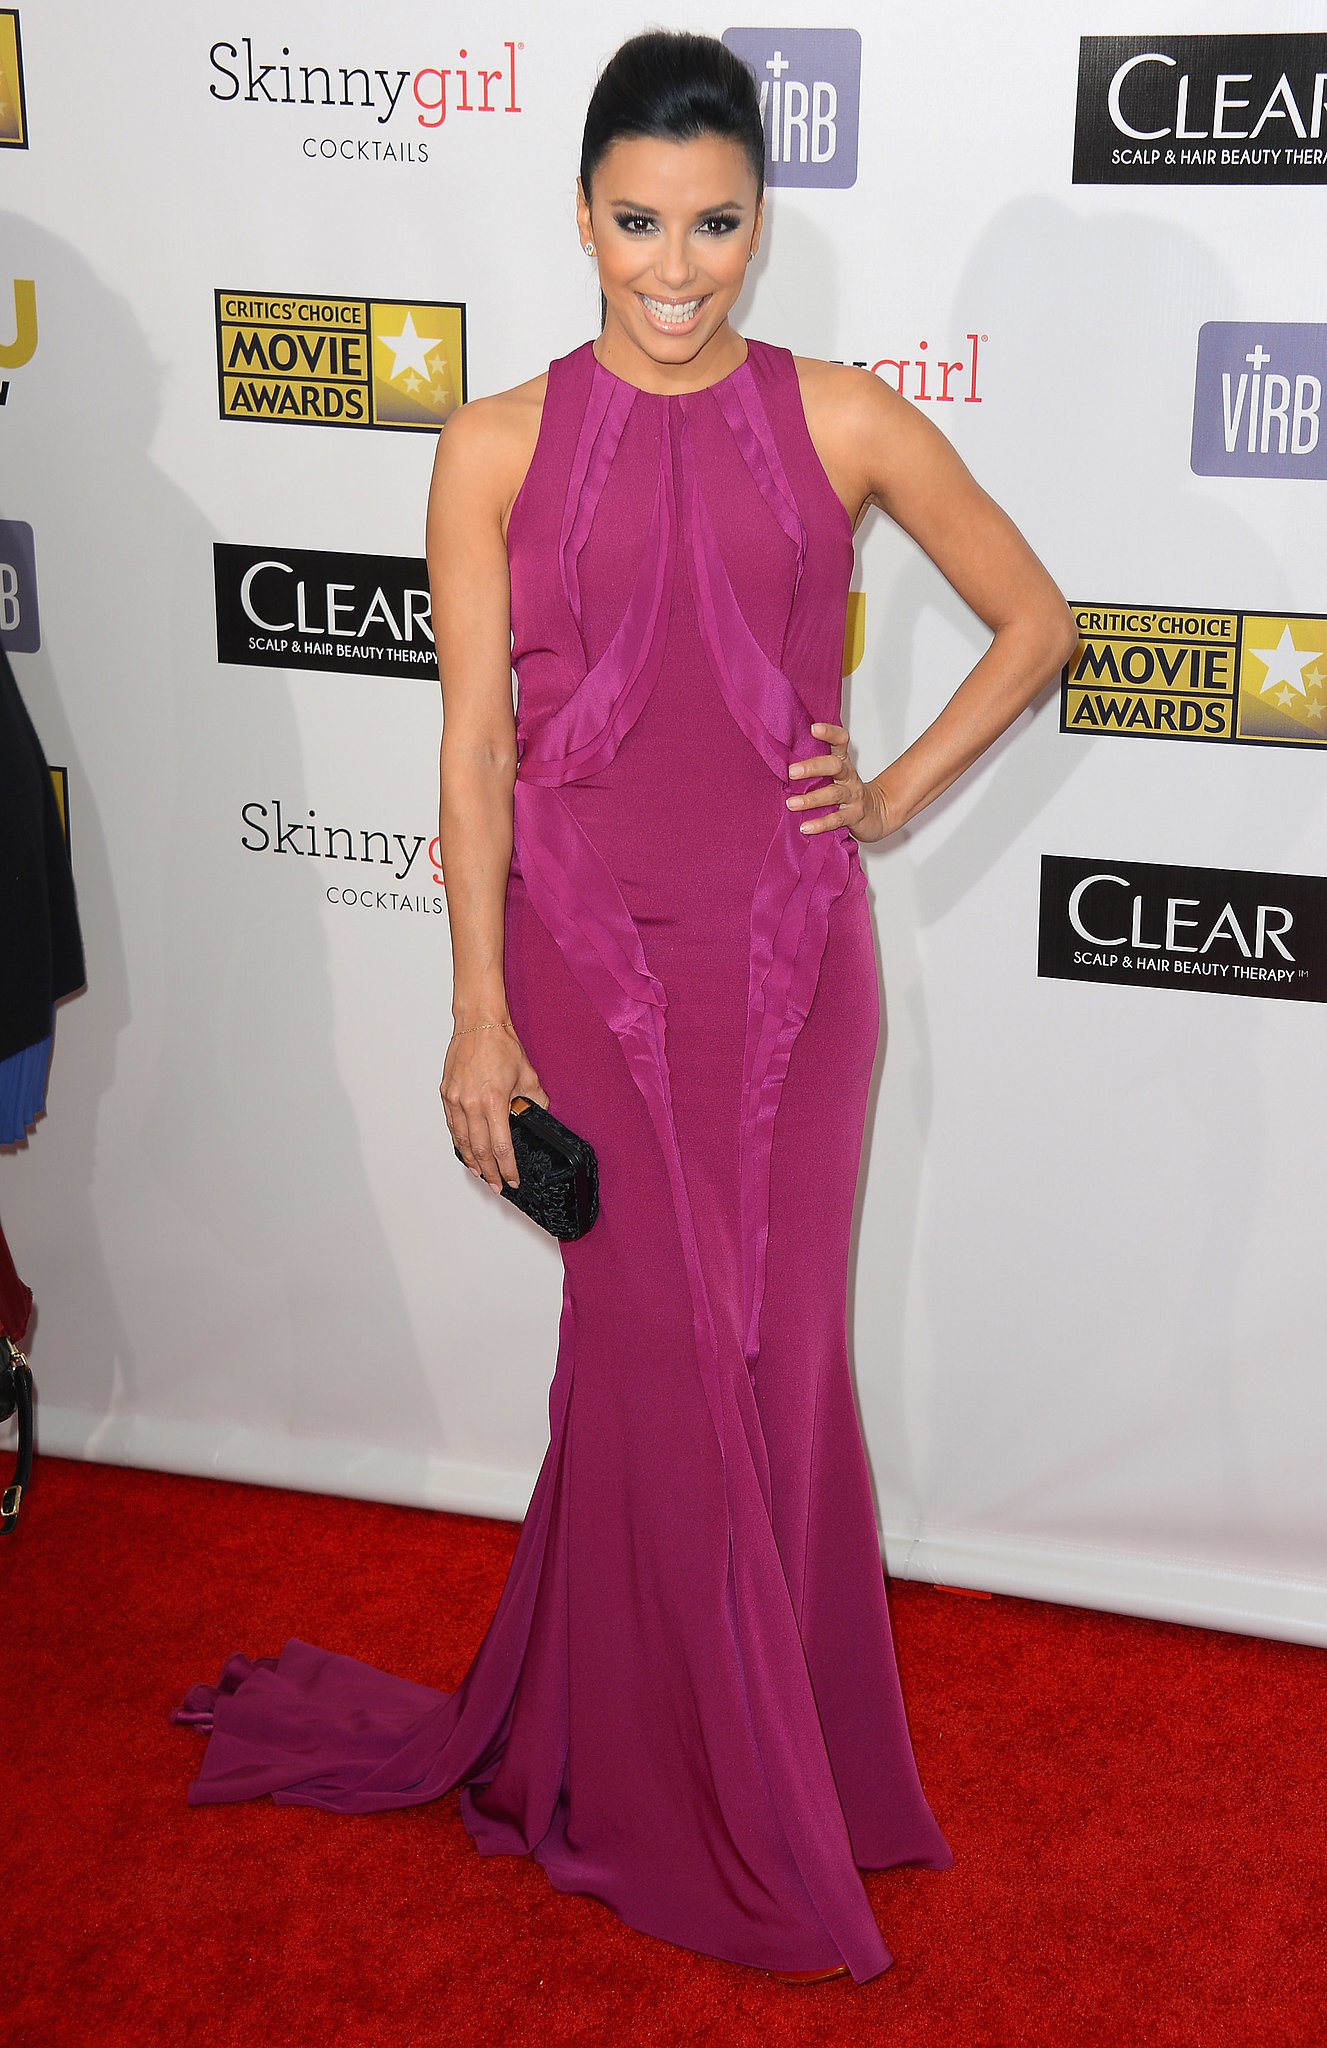 An ethereal Monique Lhuillier gown for the 2013 Critics' Choice Awards.